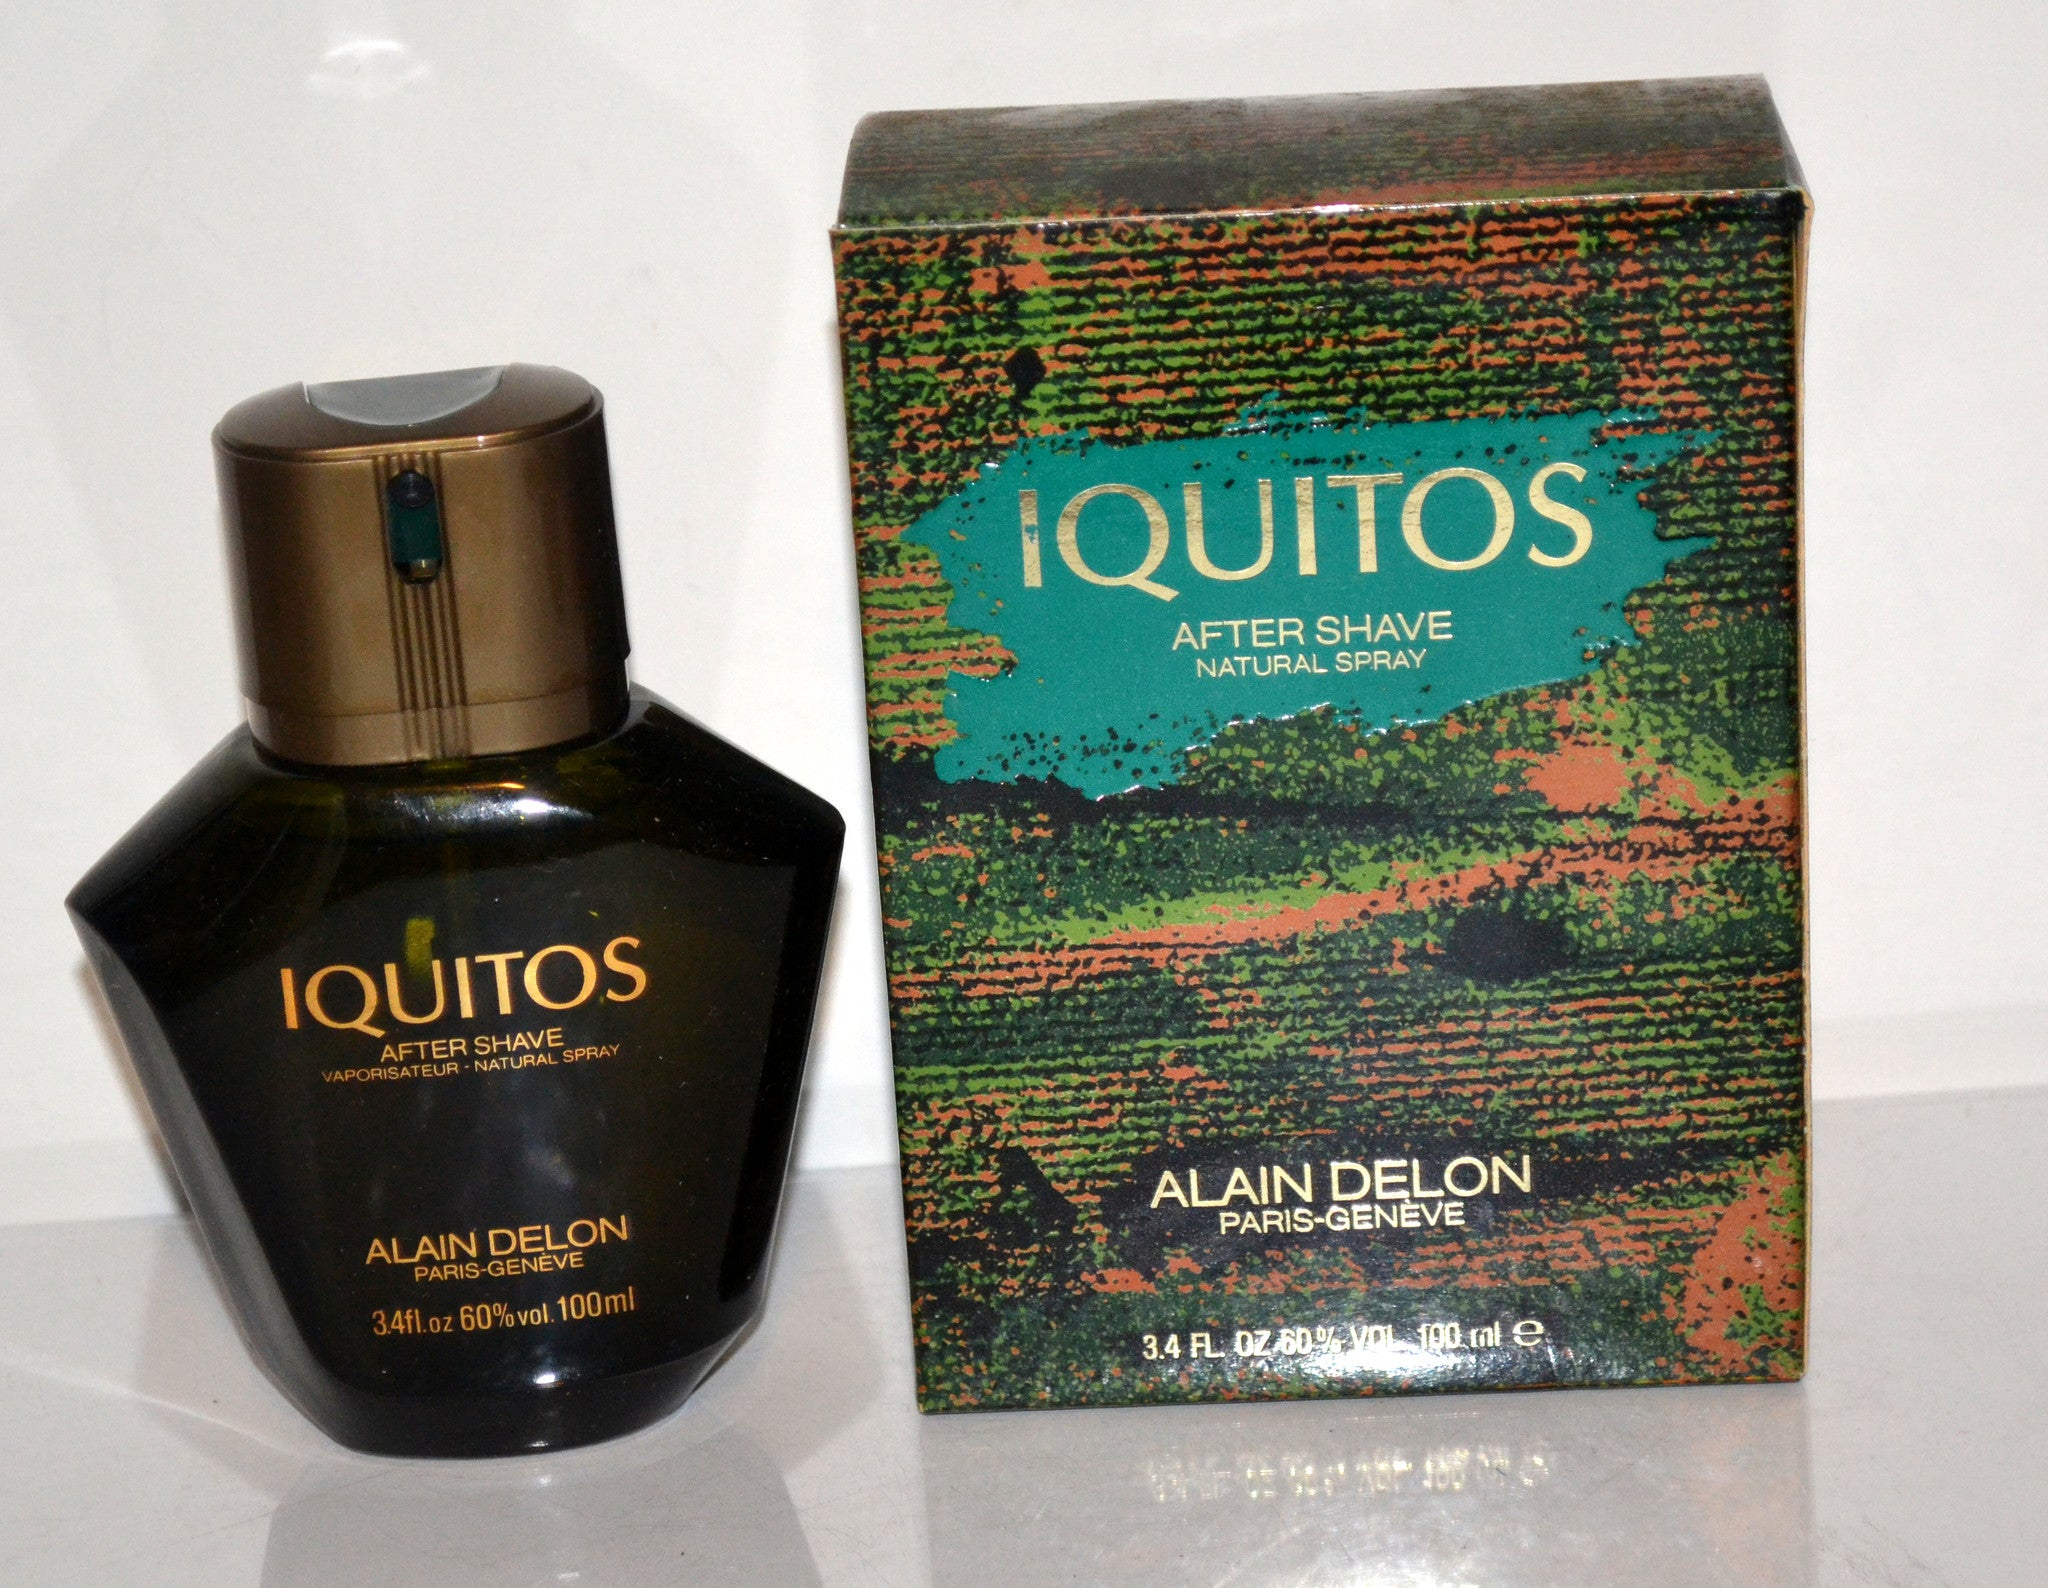 Alain Delon Iquitos After Shave